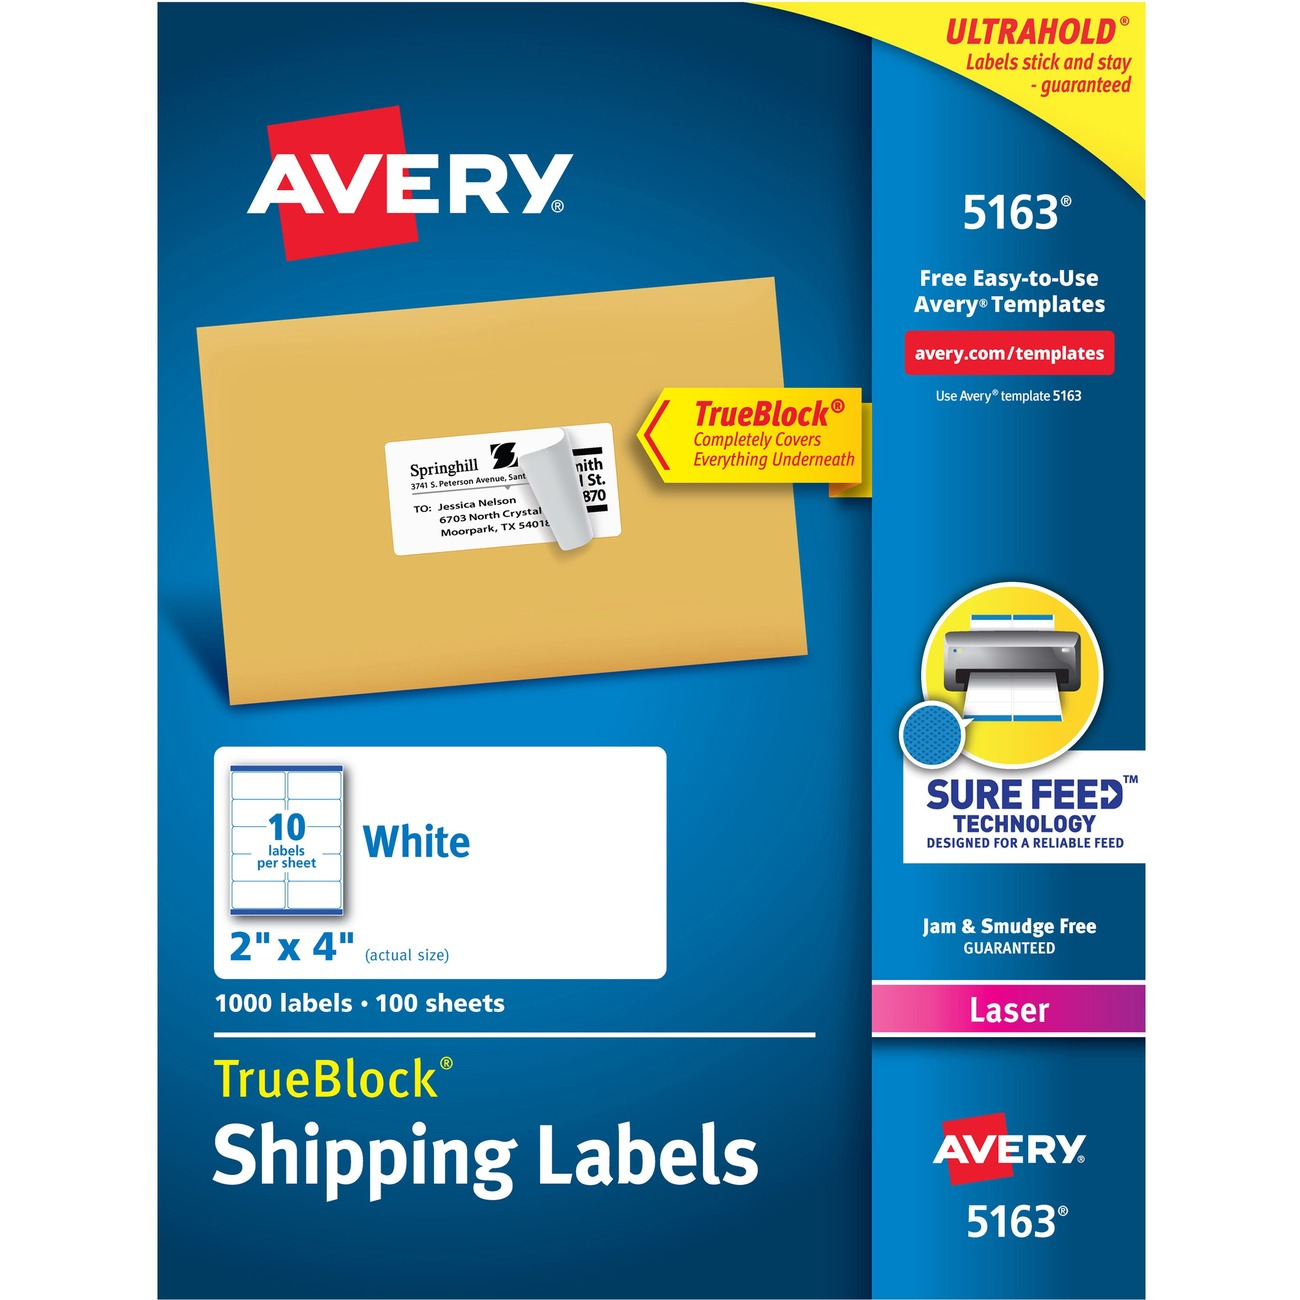 discount ave5163 avery 5163 avery shipping labels with trueblock technology address label